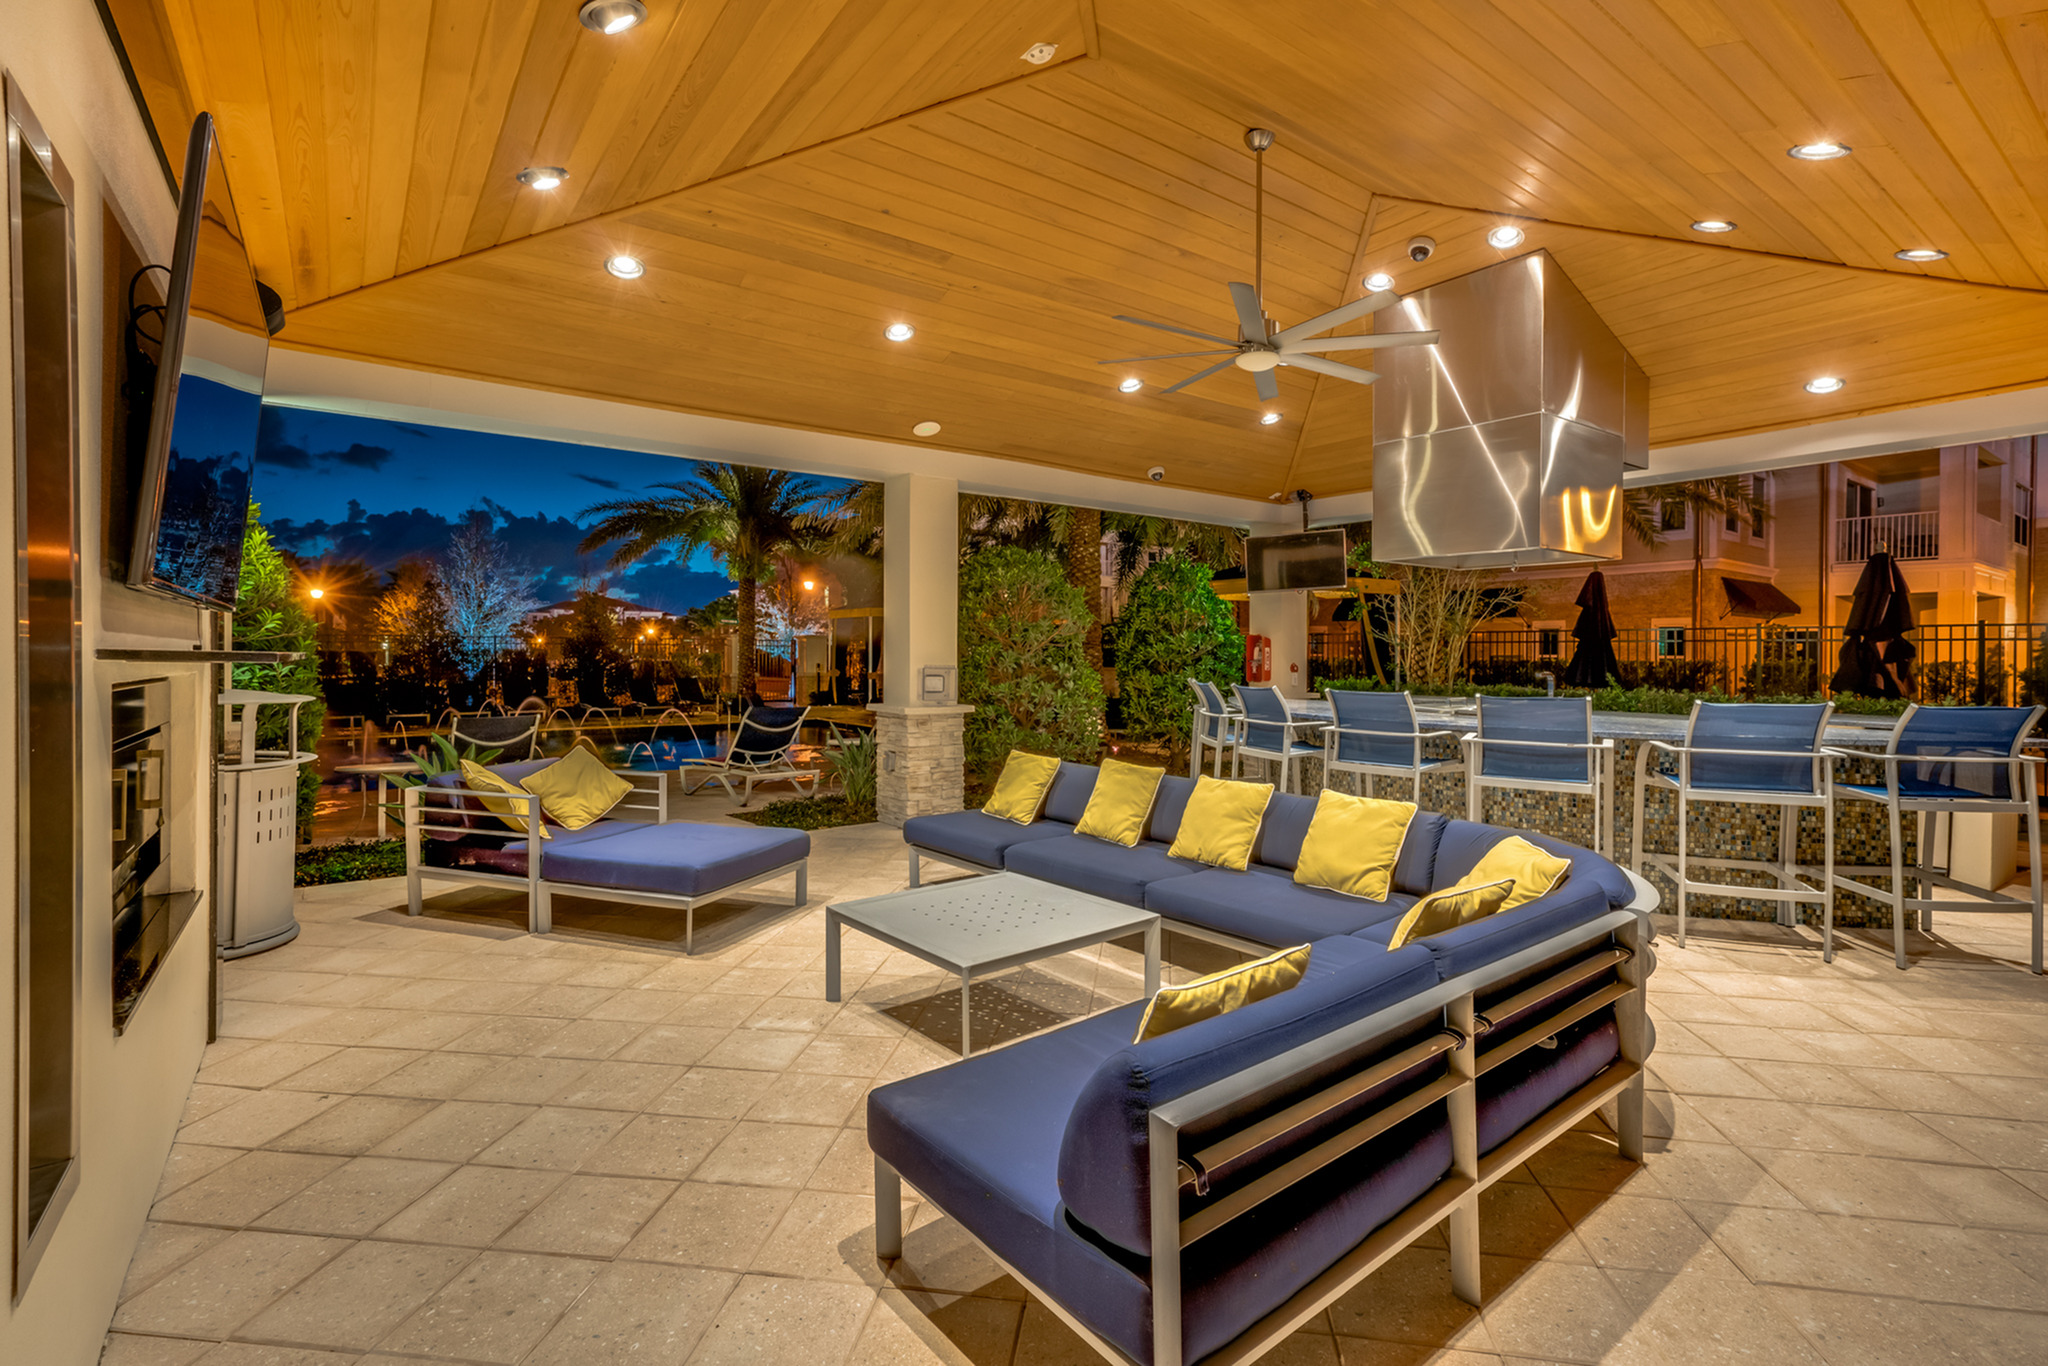 View of Grilling Lounge, Showing Pavilion Area, Outdoor Couch, TV, and Chairs in Circle Around Grill at The Marq Highland Park Apartments